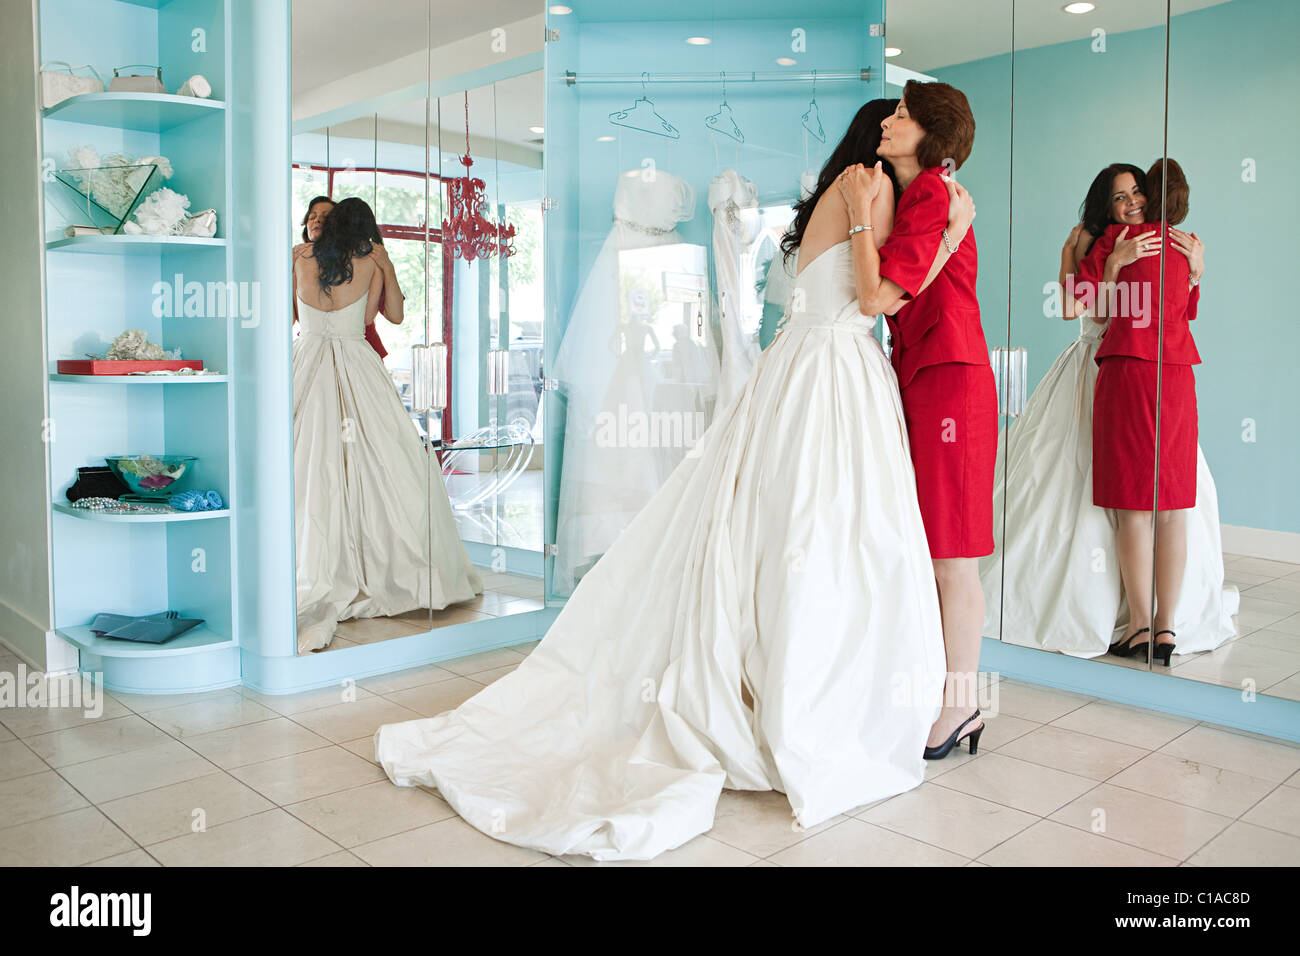 Daughter trying on wedding dress, embracing mother Stock Photo ...